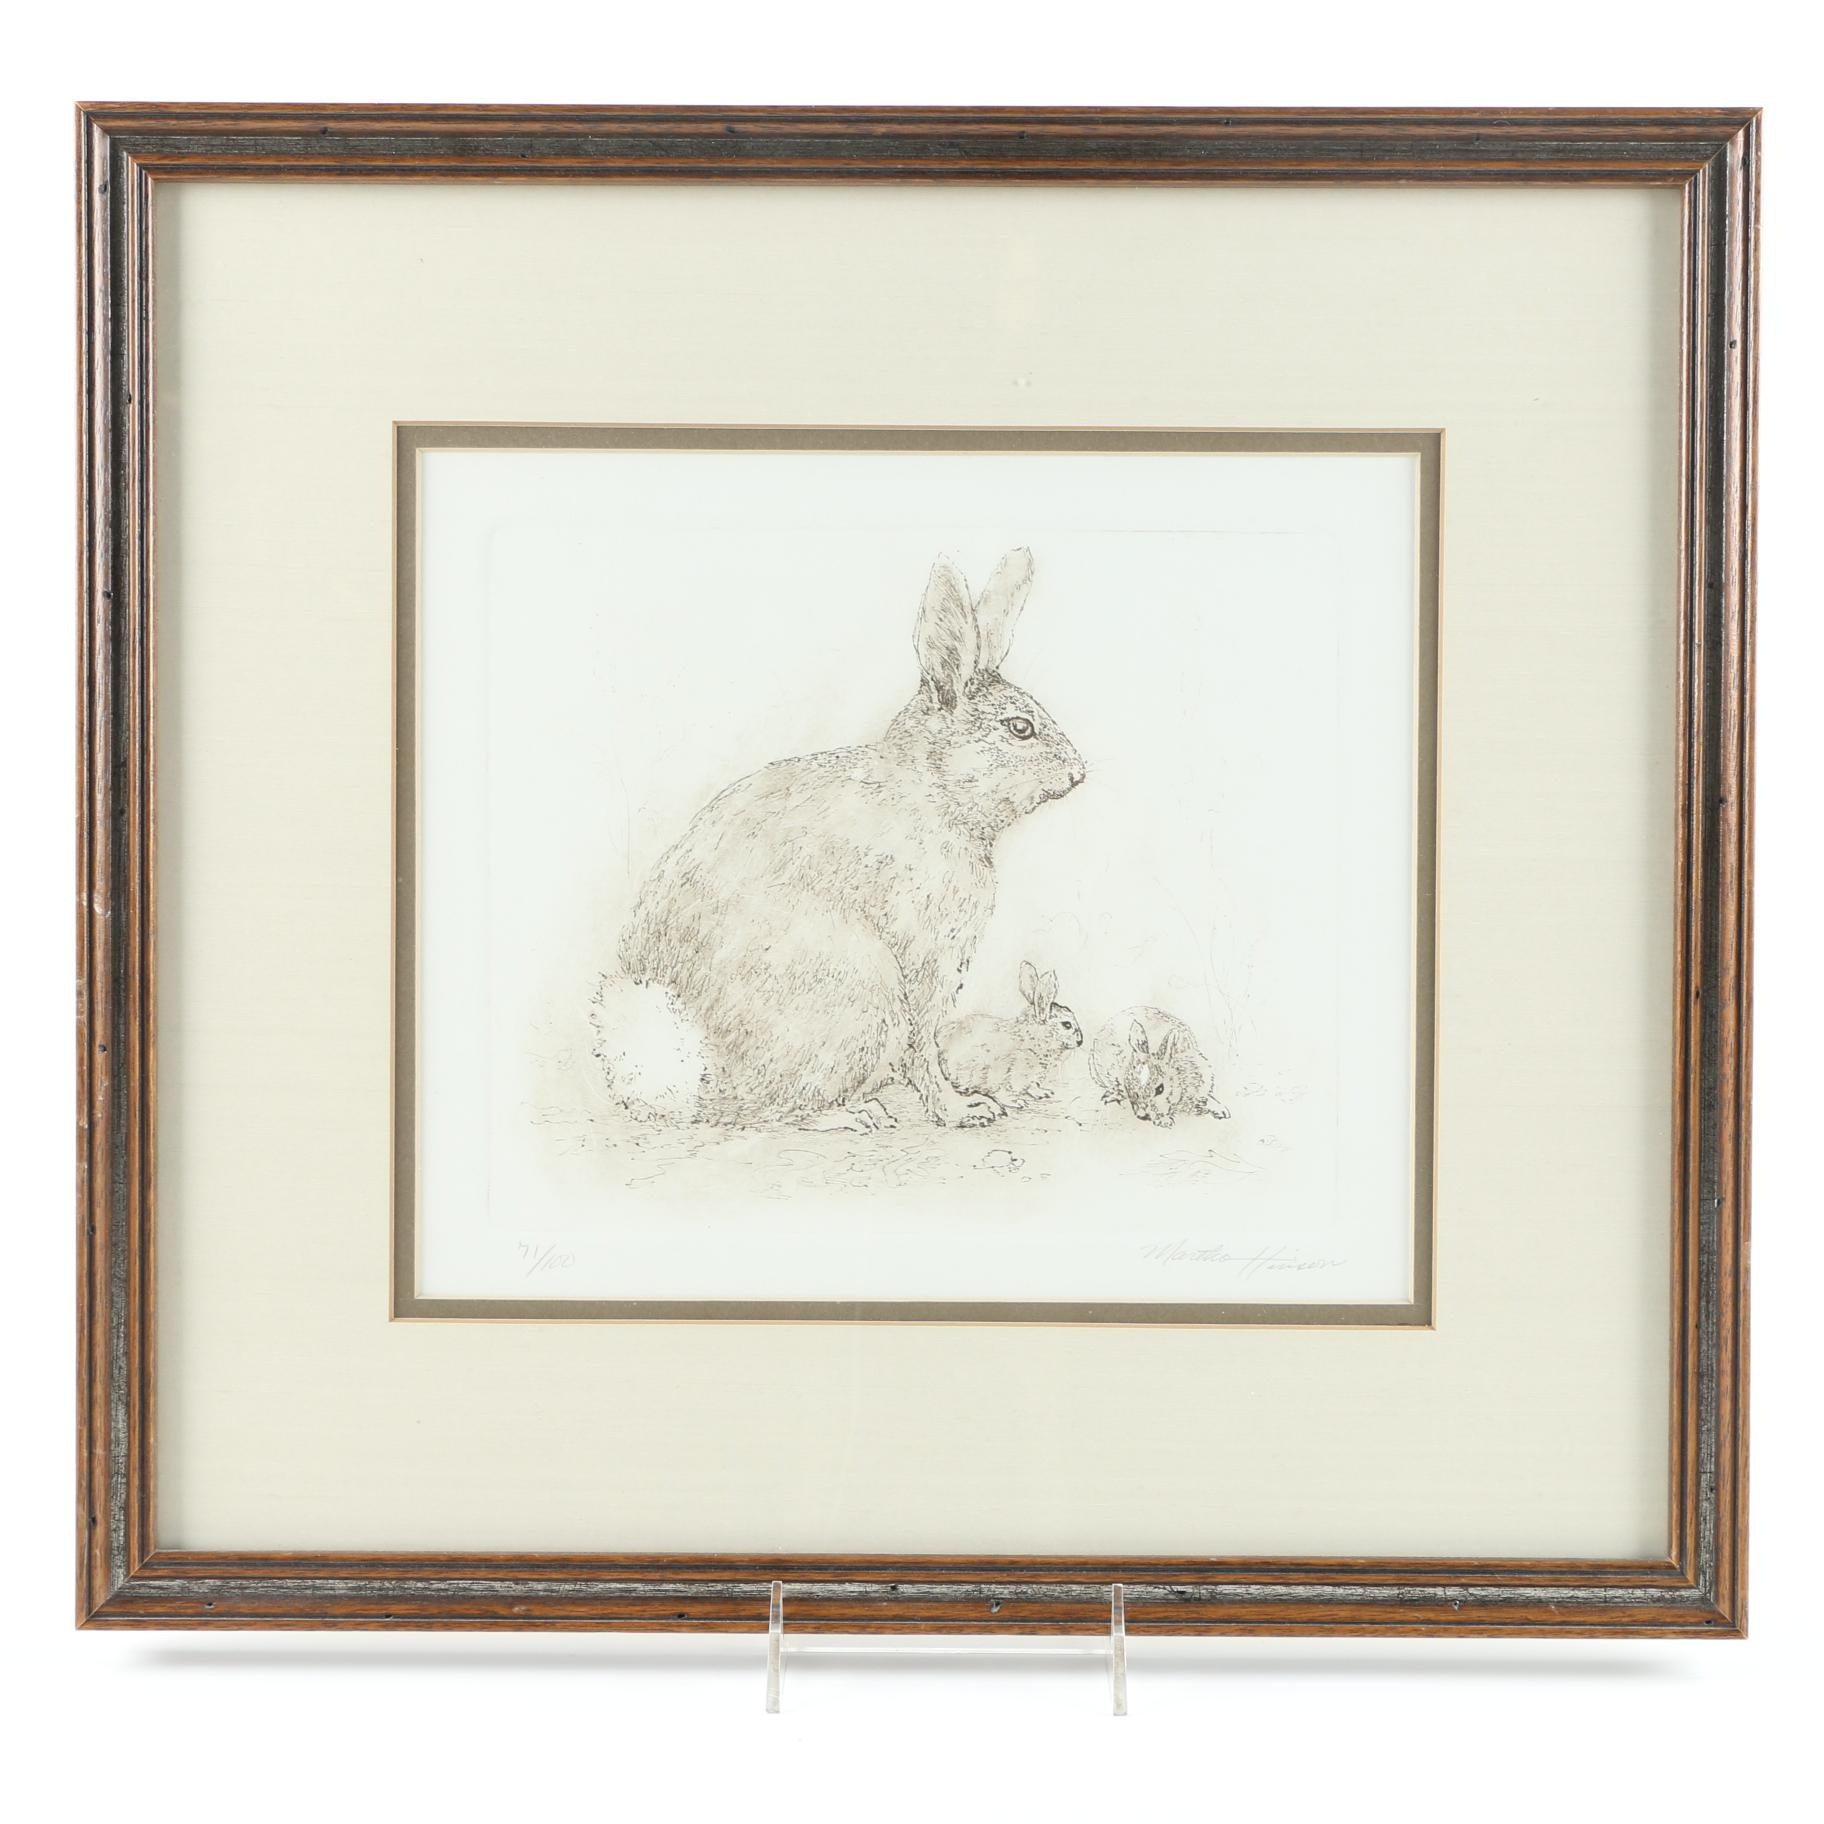 Limited Edition Martha Harrison Lithograph of Bunnies